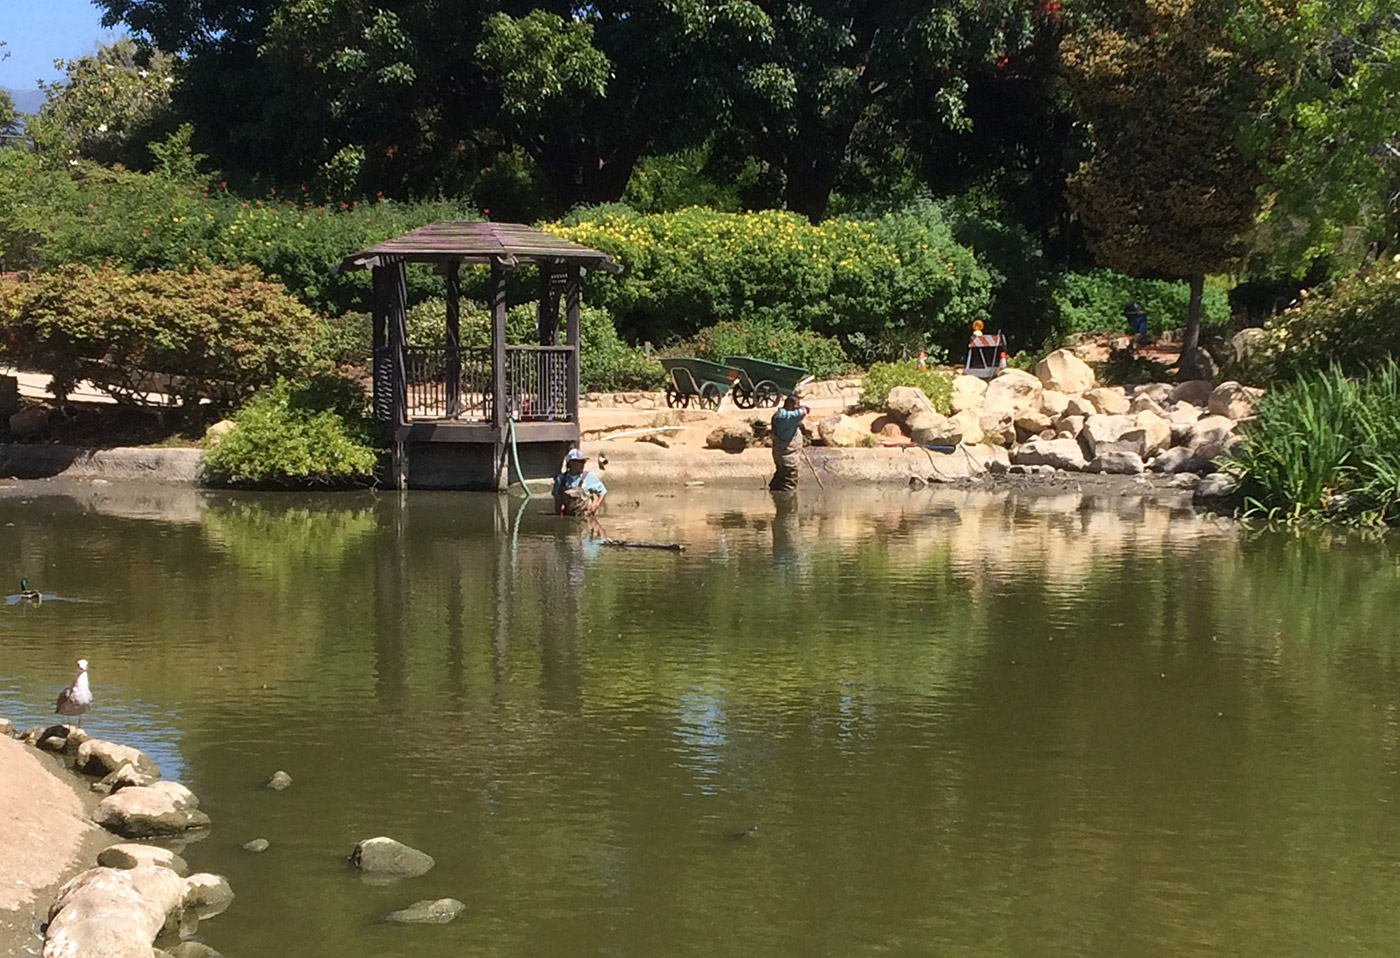 Pond at Alice Keck Park Being Drained